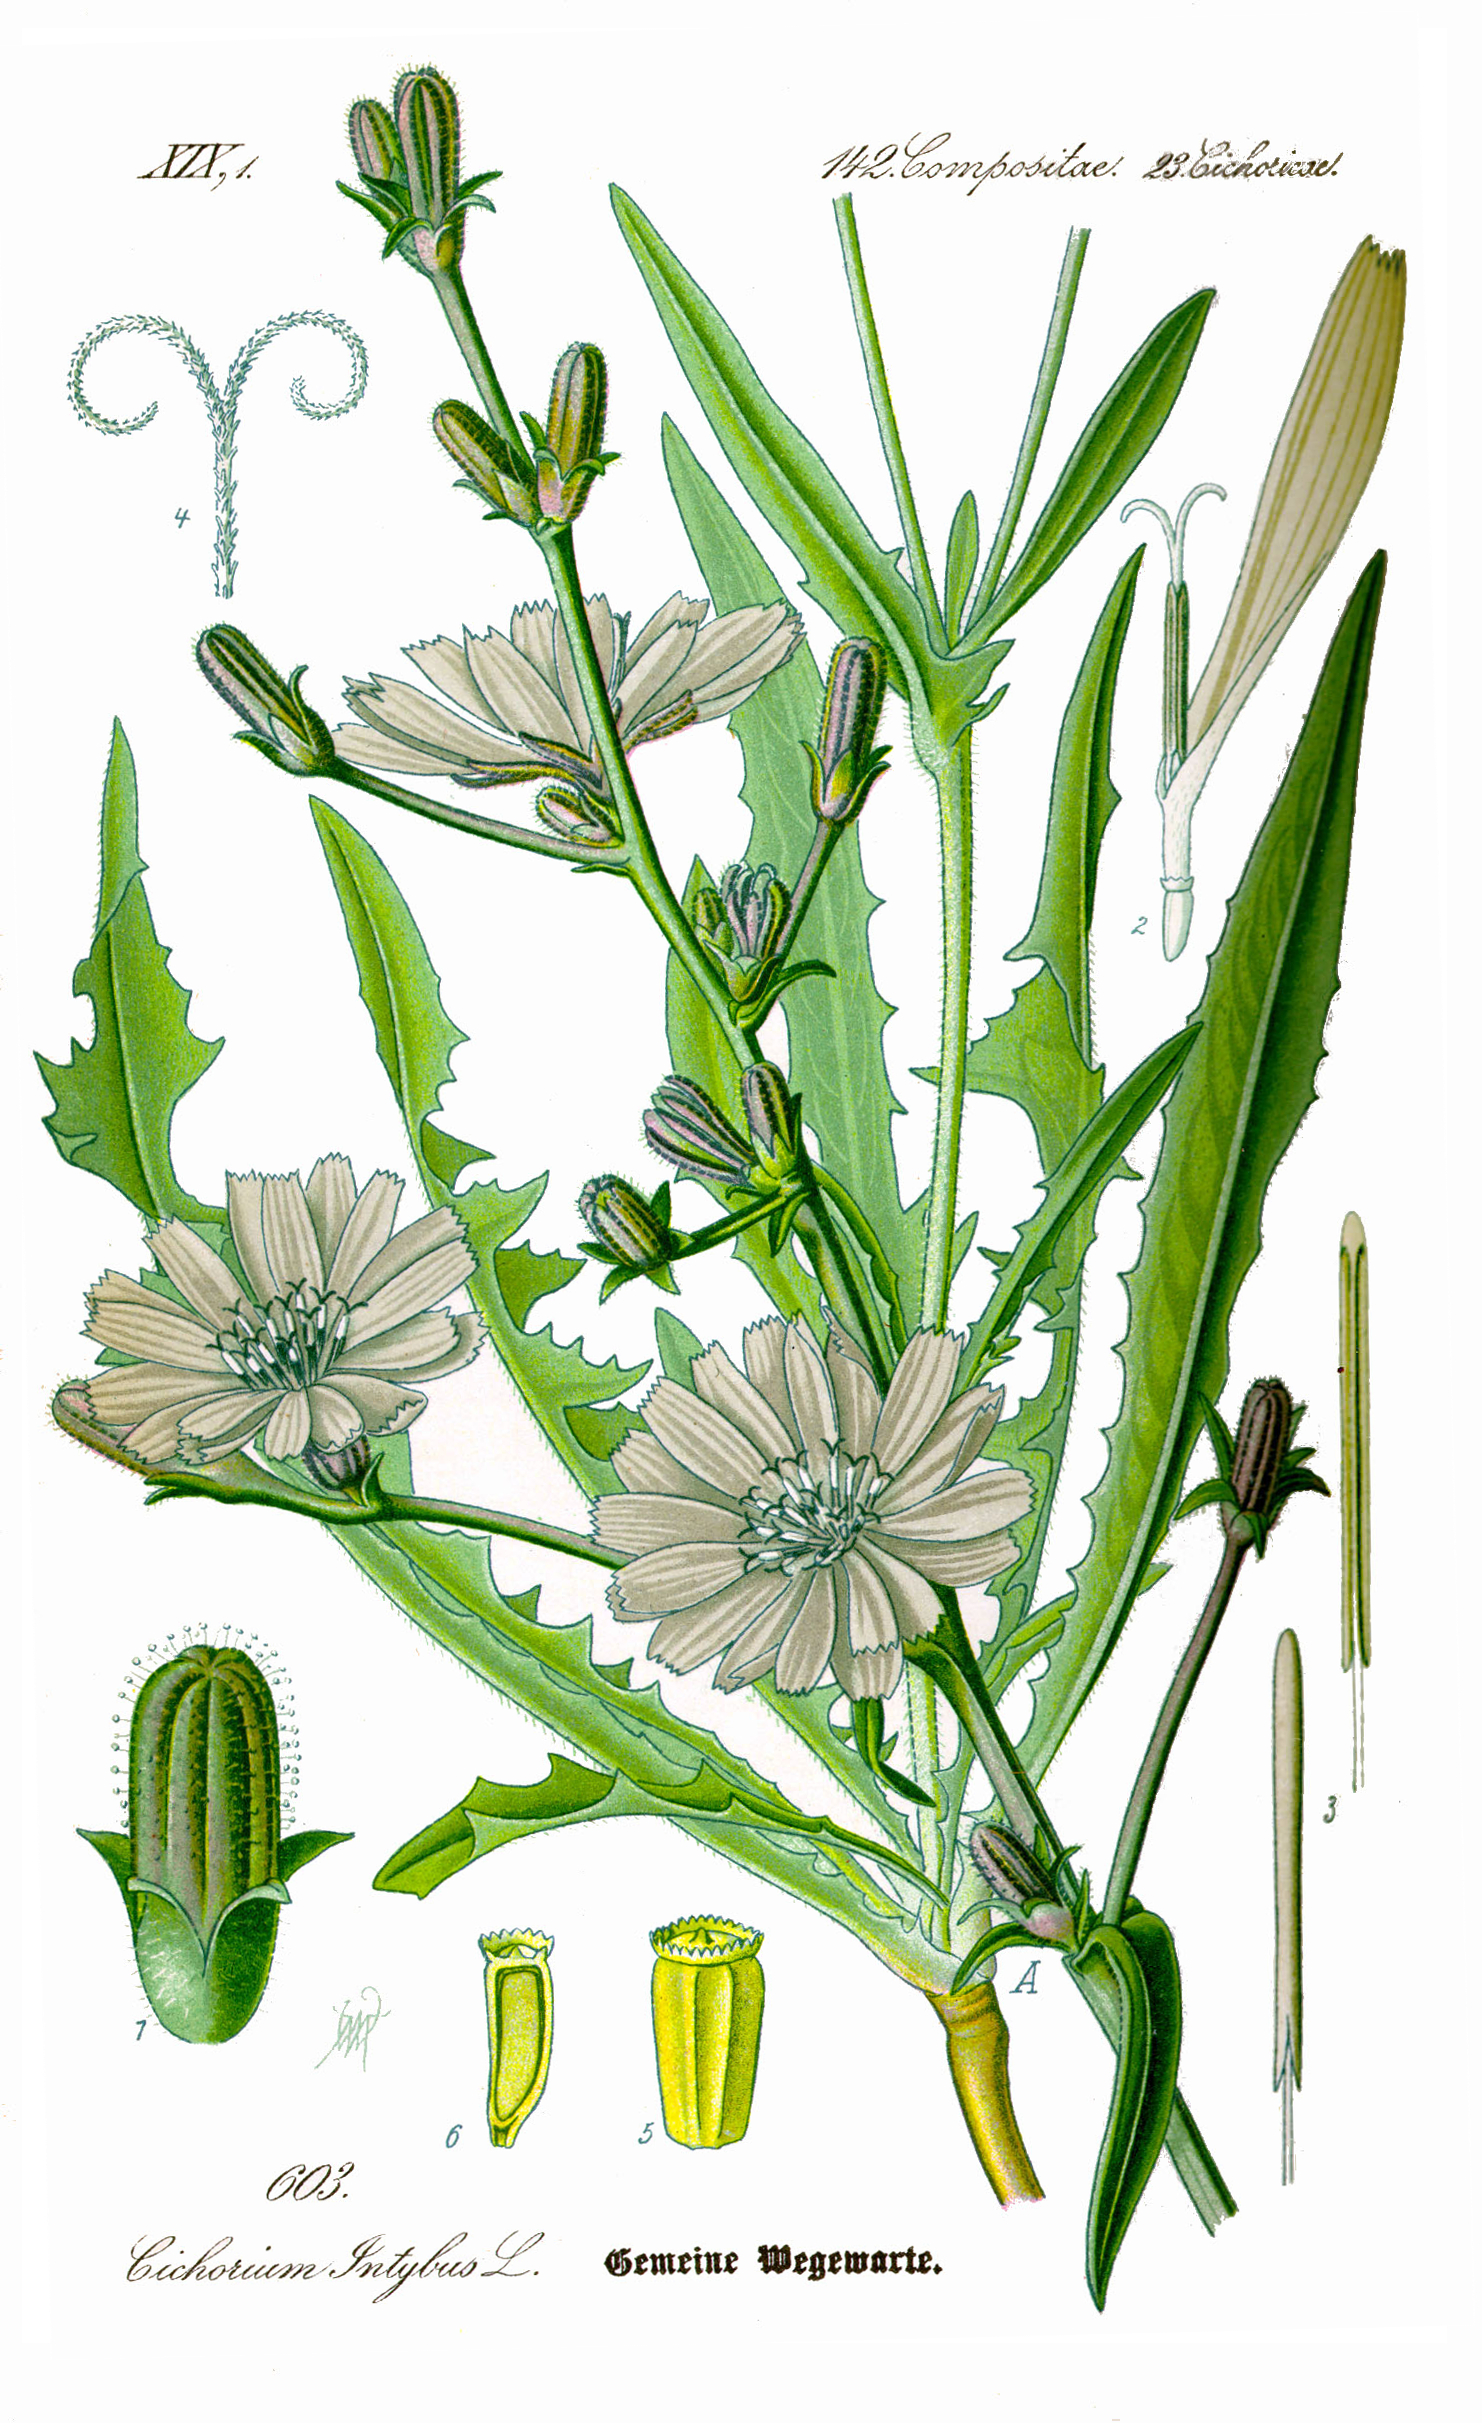 Chicory.  By Original book source: Prof. Dr. Otto Wilhelm Thomé Flora von Deutschland, Österreich und der Schweiz 1885, Gera, Germany - www.biolib.de, Public Domain, https://commons.wikimedia.org/w/index.php?curid=7046954